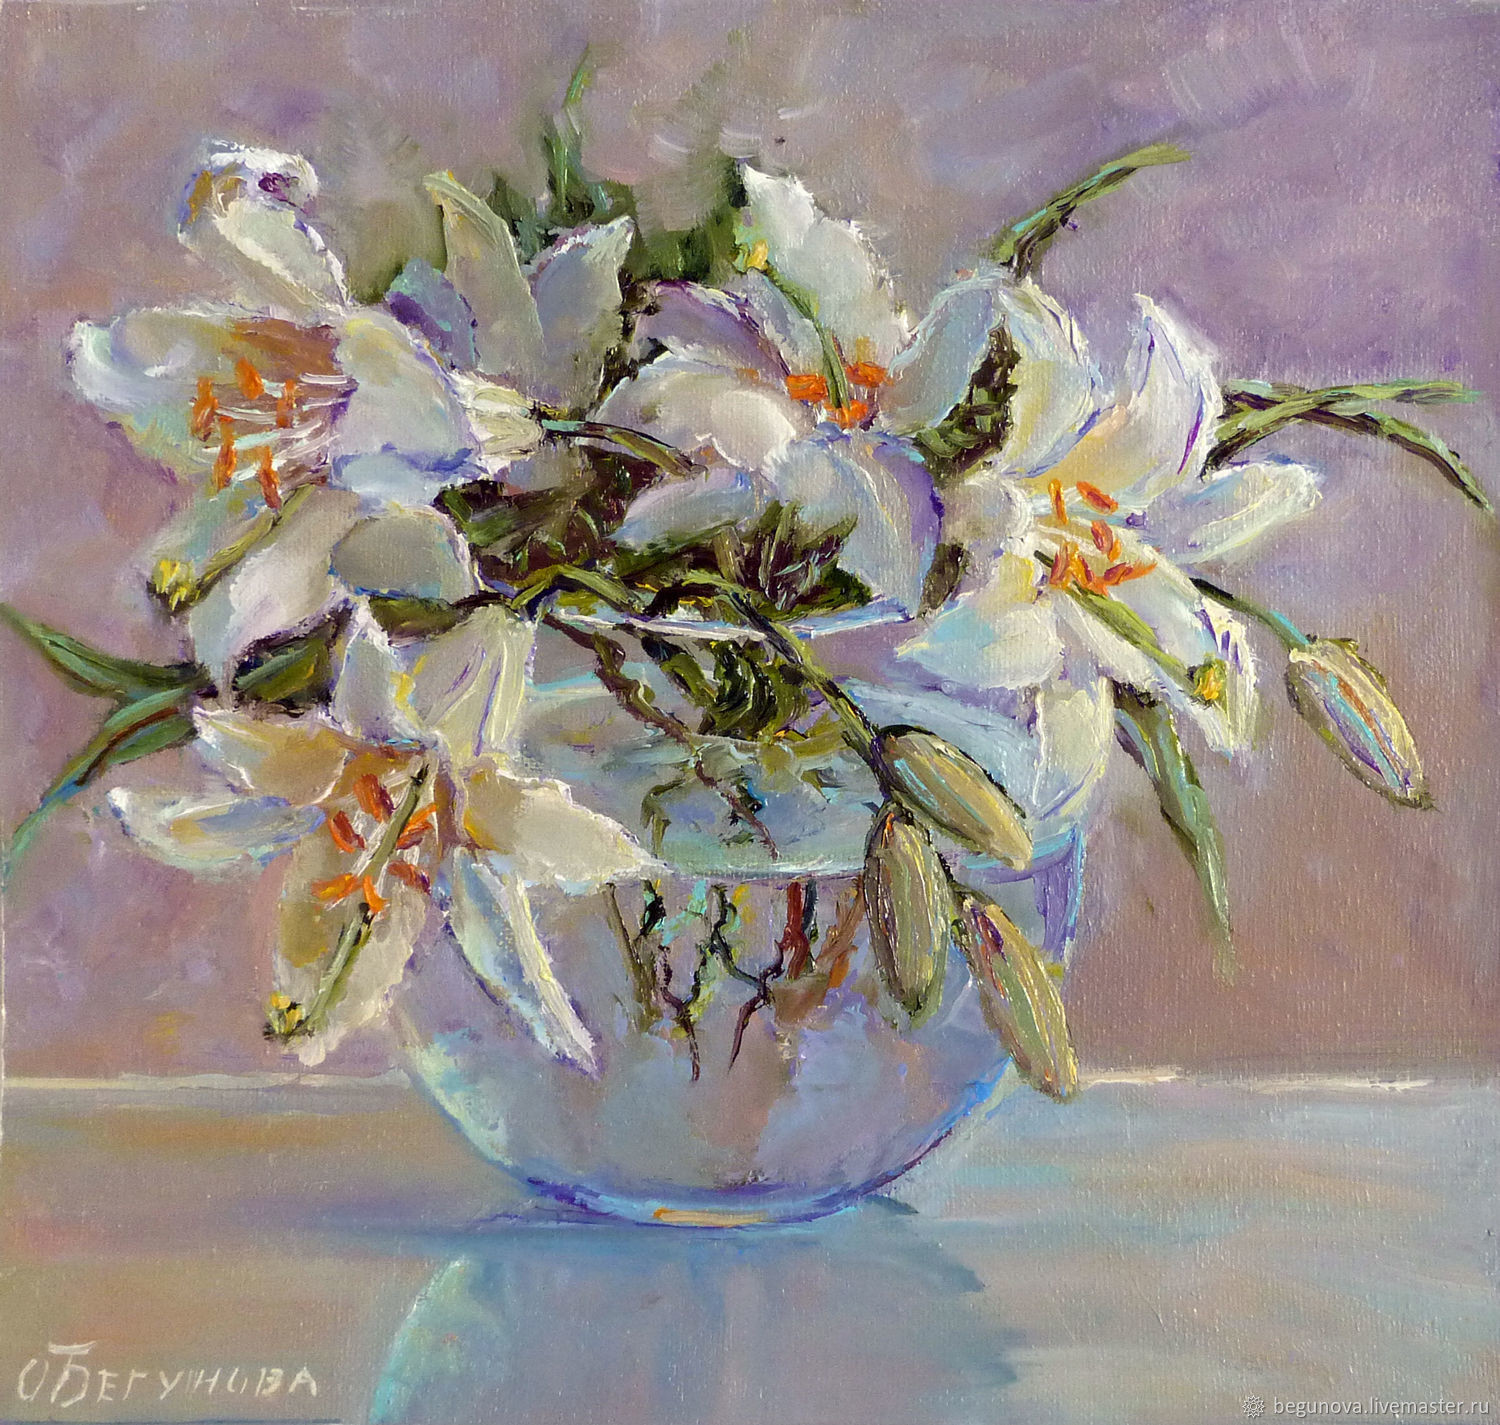 Vase with Lilies Of Oil Painting Flowers White Liliespainting the Lilies the Lilies Intended for Flower Paintings Handmade Livemaster Handmade Buy Oil Painting Flowers White Lilies